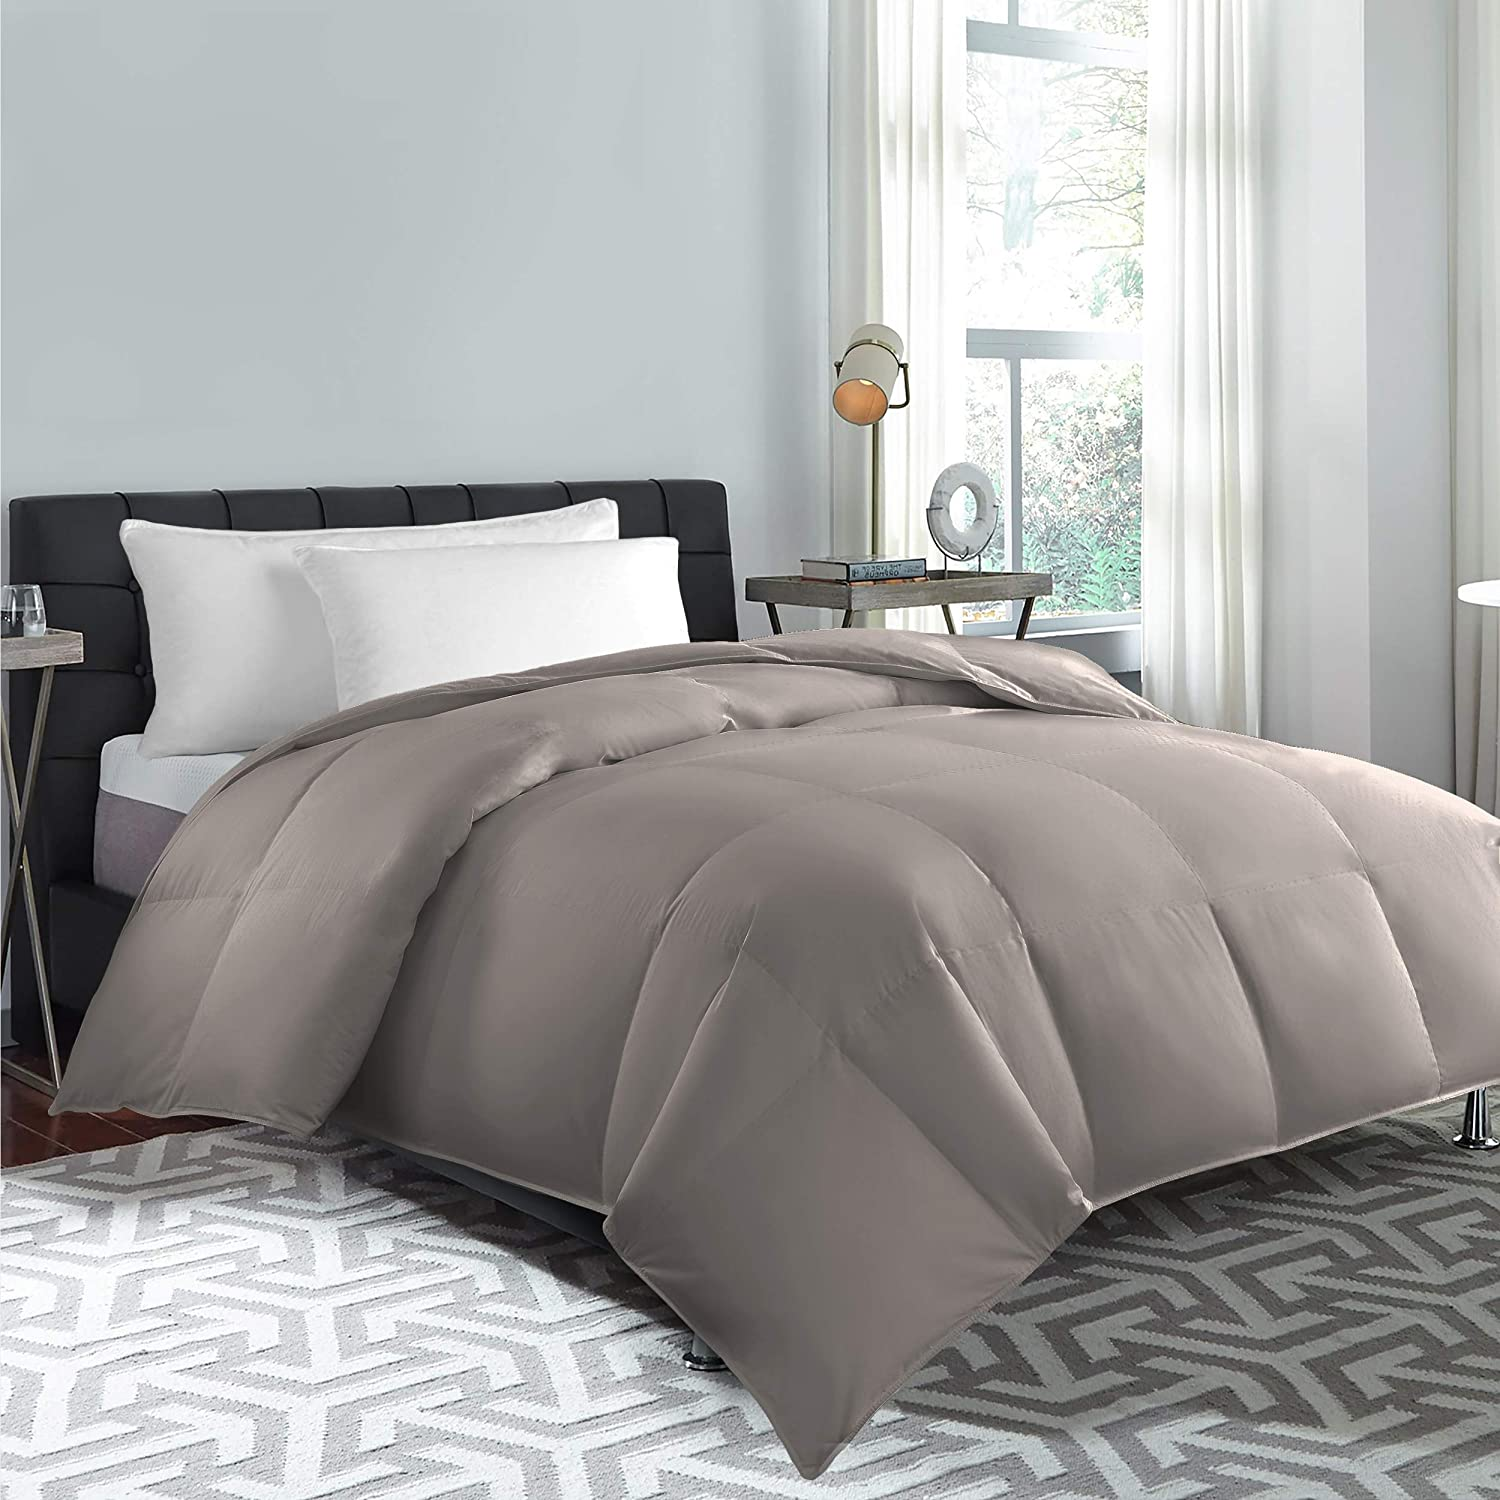 Cannon Bedding Duvet Insert Blue Ridge Home 100% Cotton Natural Down and Feather Filling Hypoallergenic All seasons Comforter, KING, Taupe